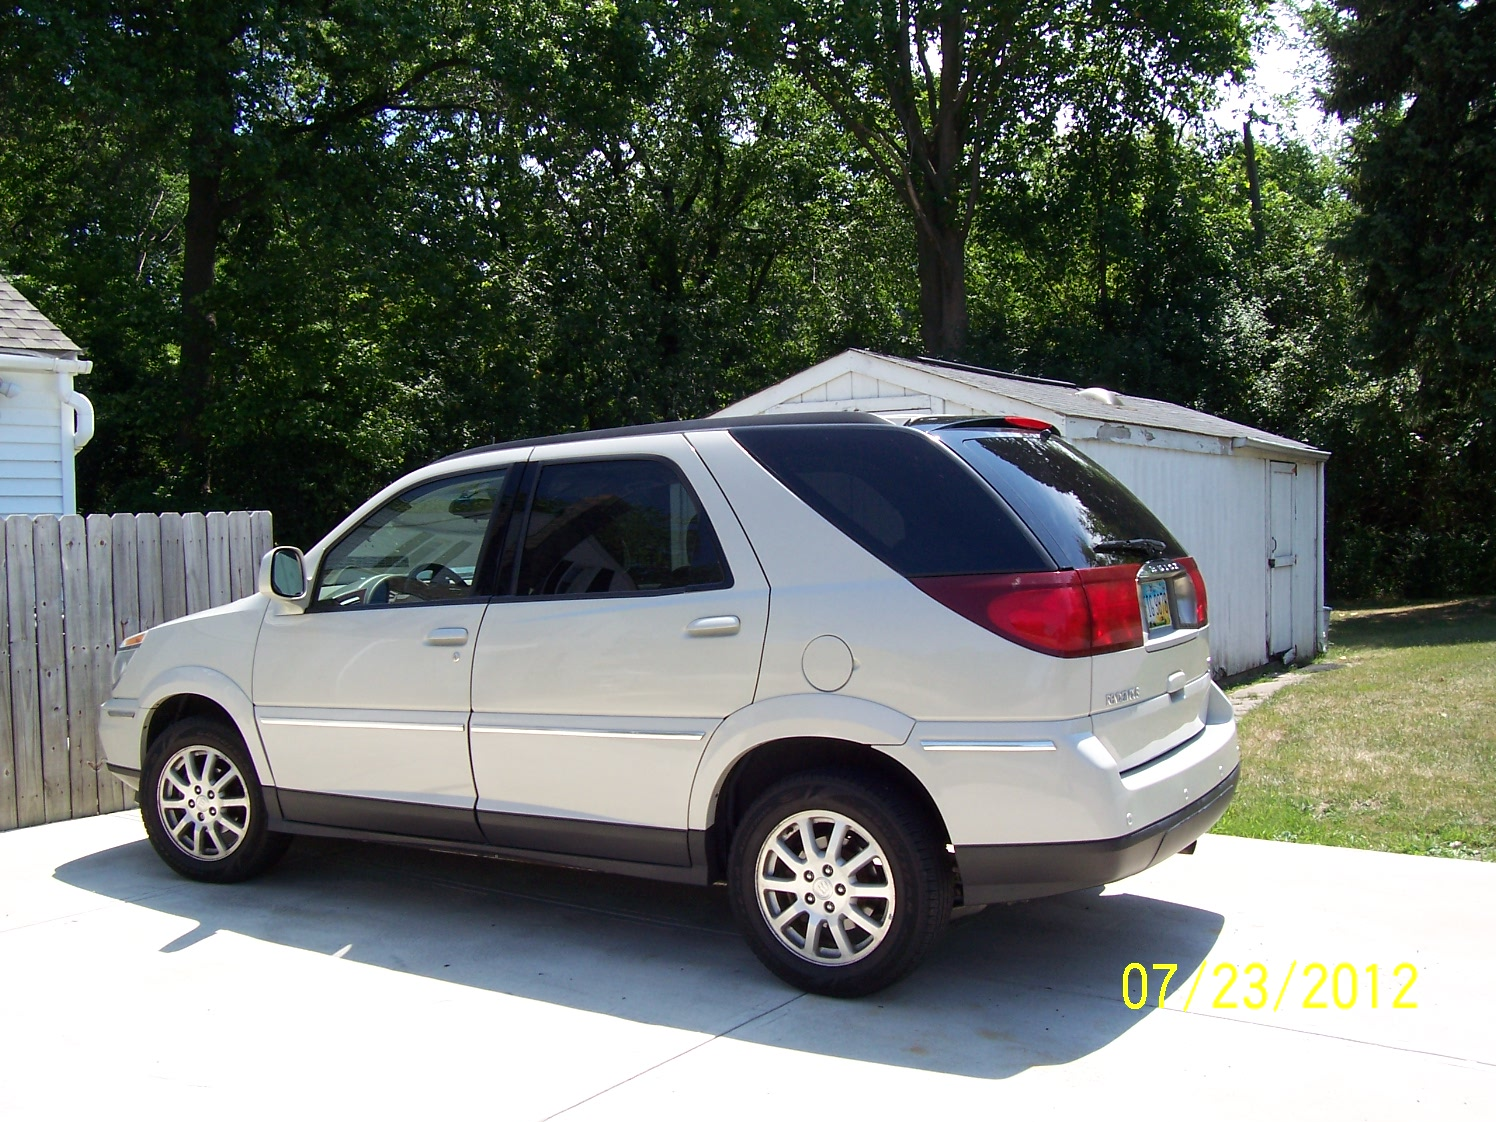 2006 buick rendezvous exterior pictures cargurus. Cars Review. Best American Auto & Cars Review